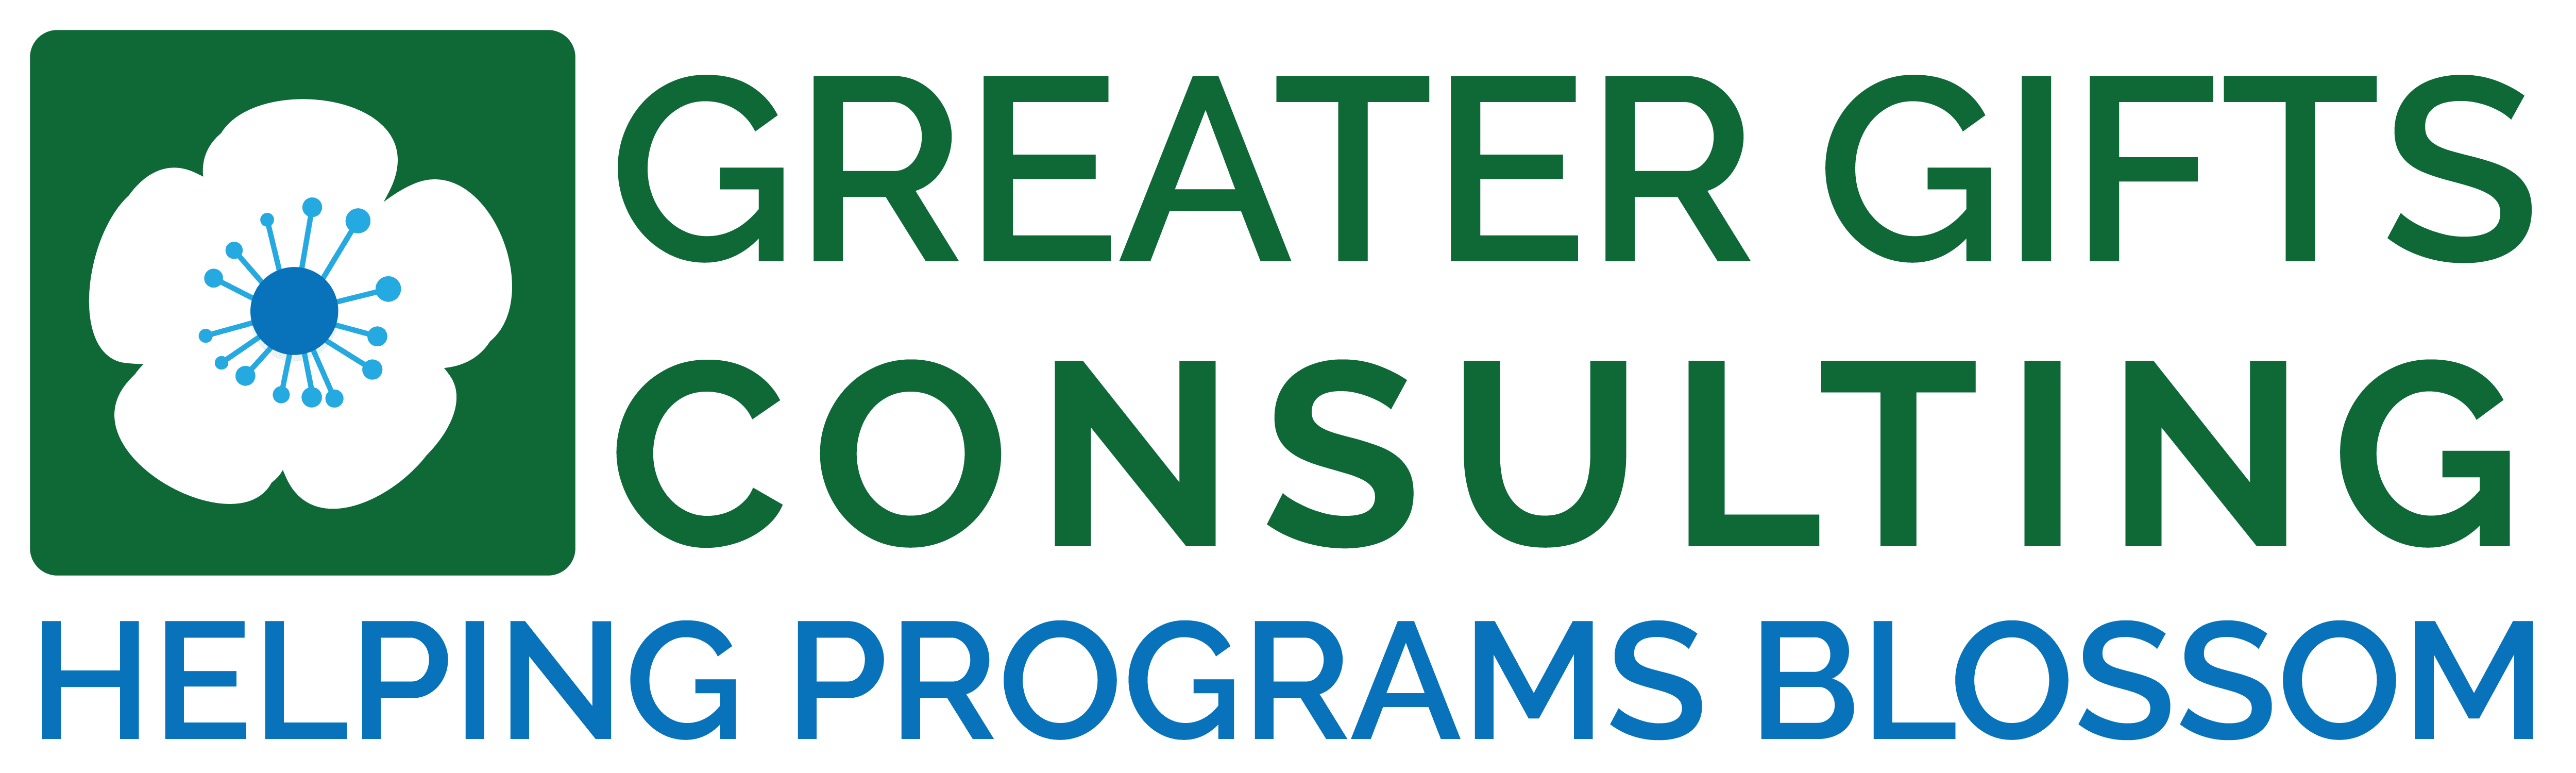 Greater Gifts Consulting